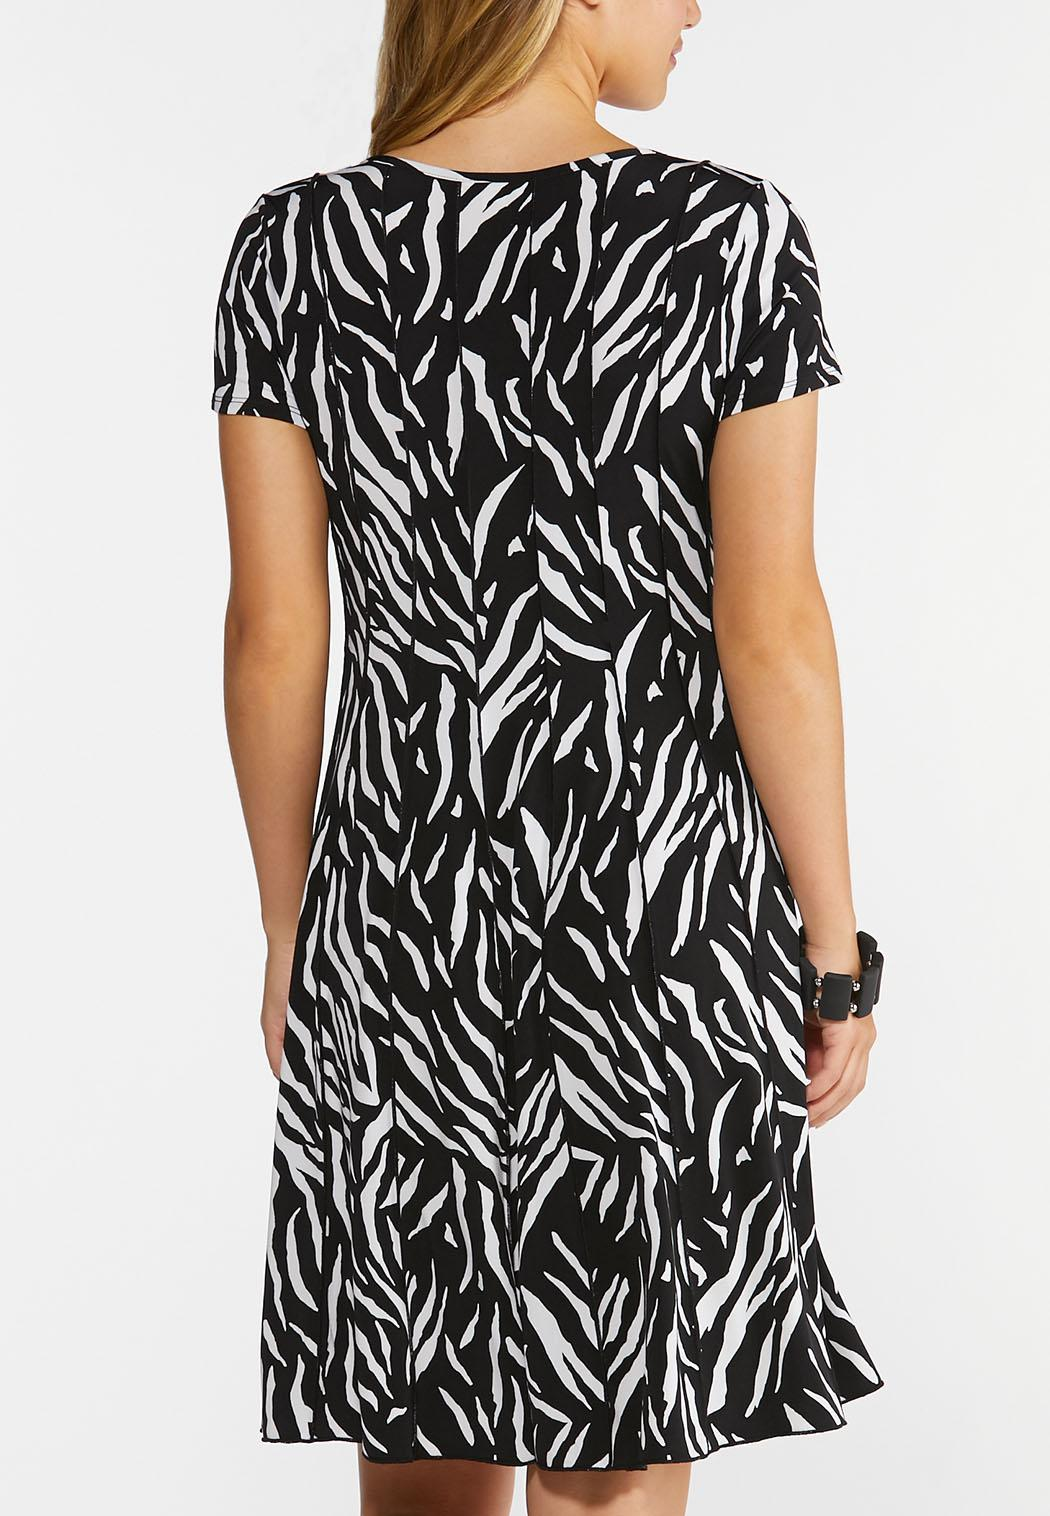 Embellished Zebra Print Dress (Item #44294605)